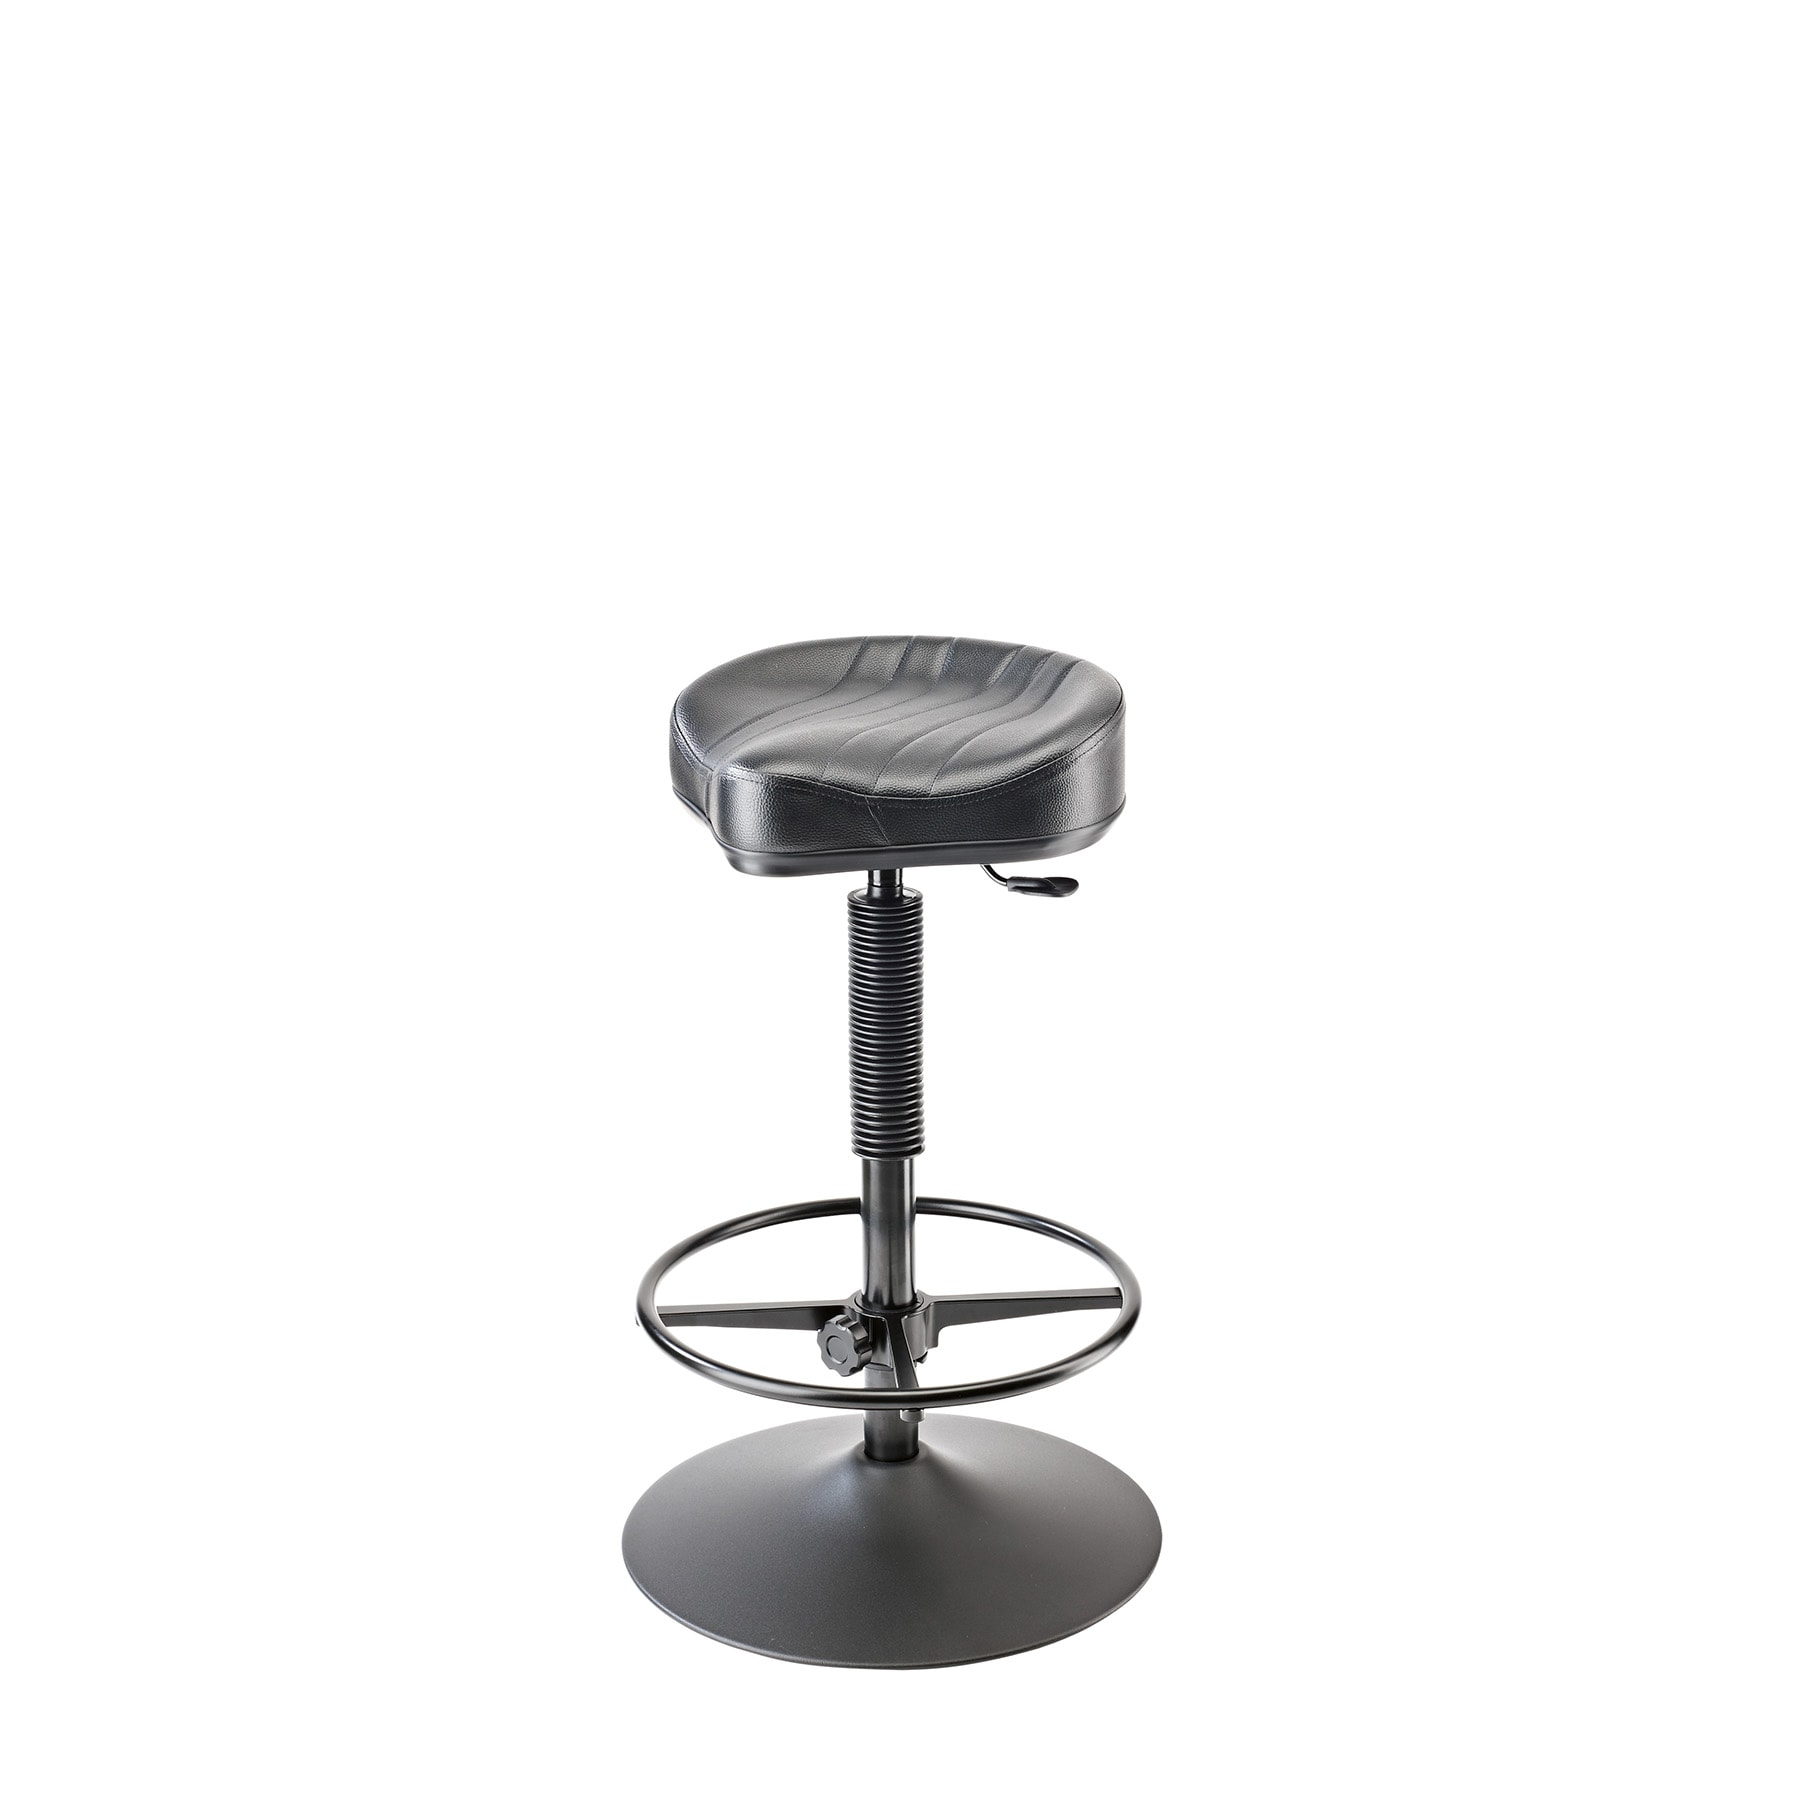 KM14091 - Stage stool